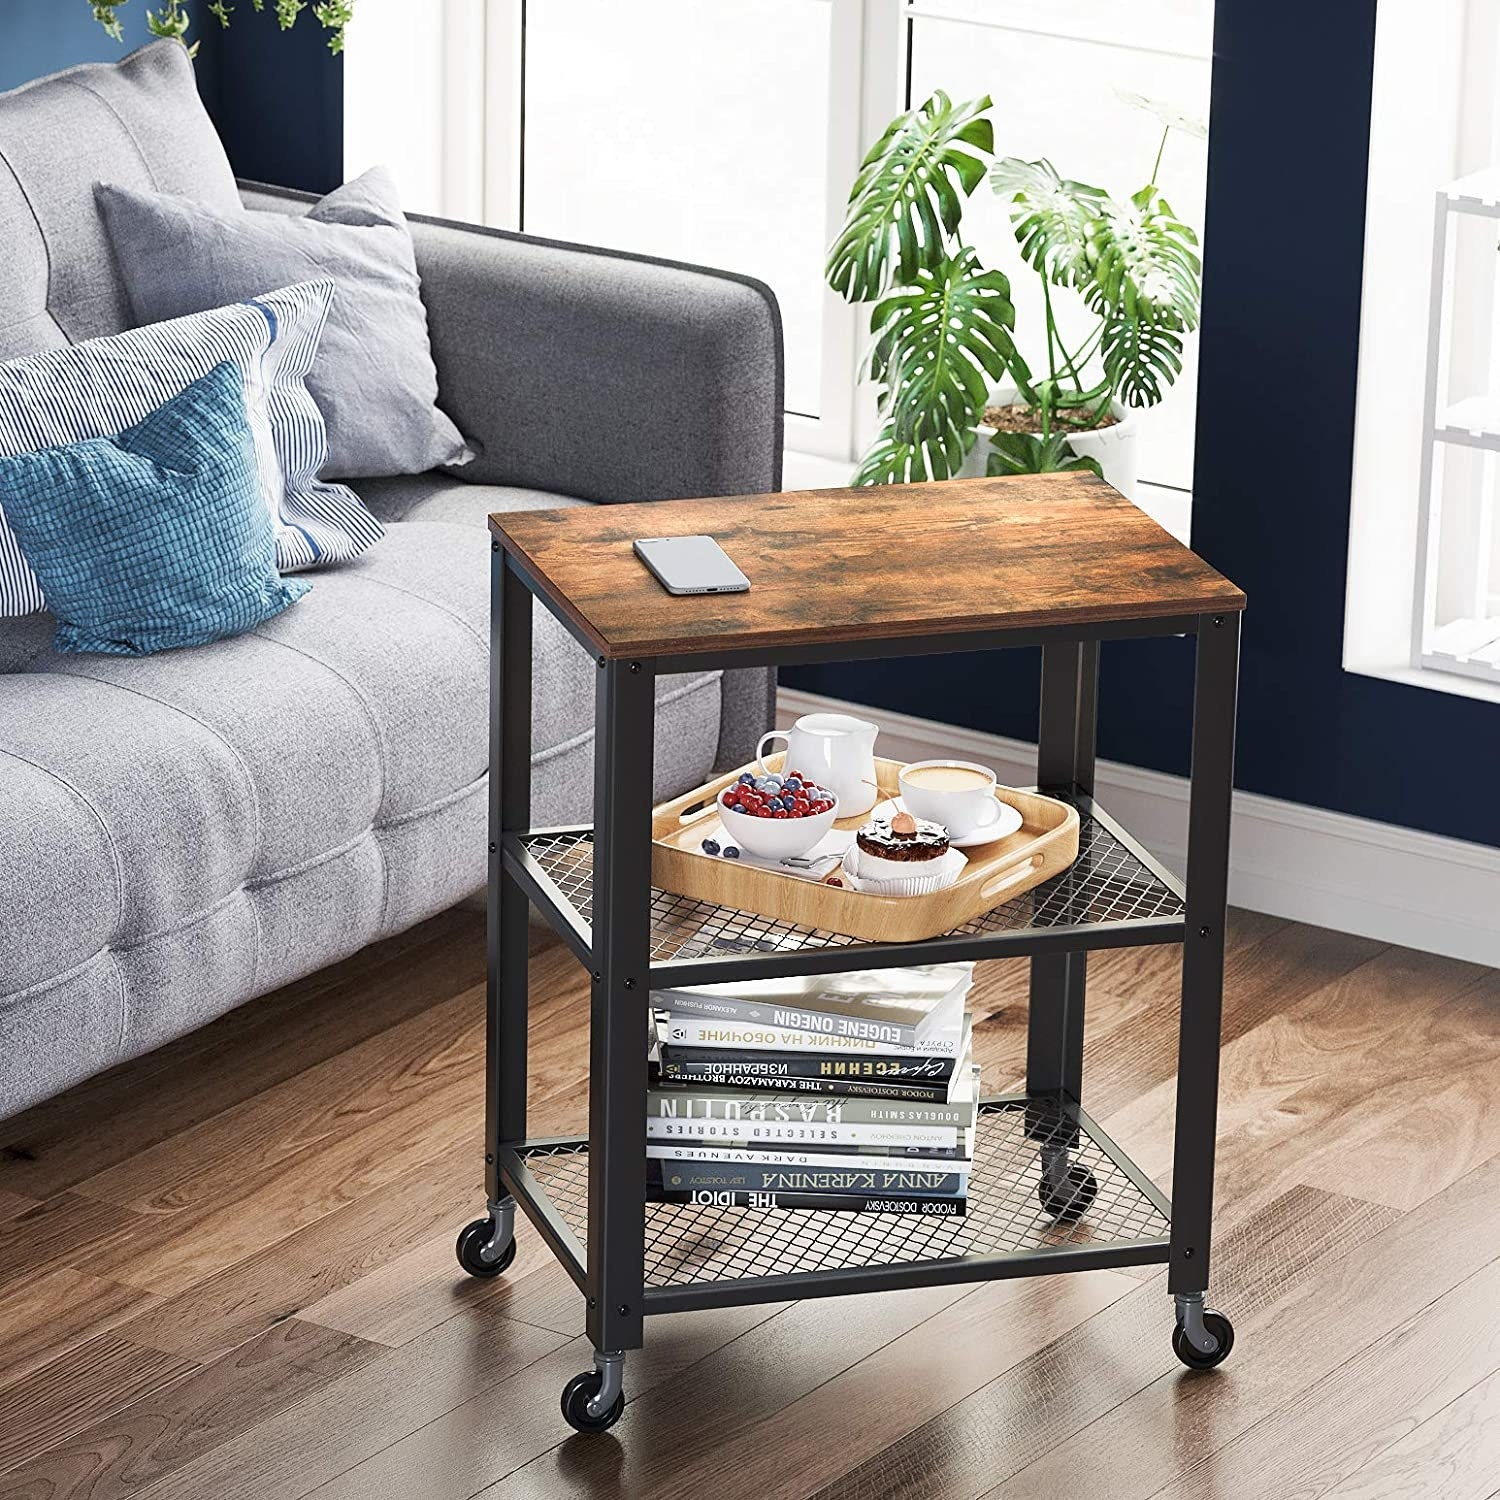 Wooden top bar cart with black body and two metal mesh shelves